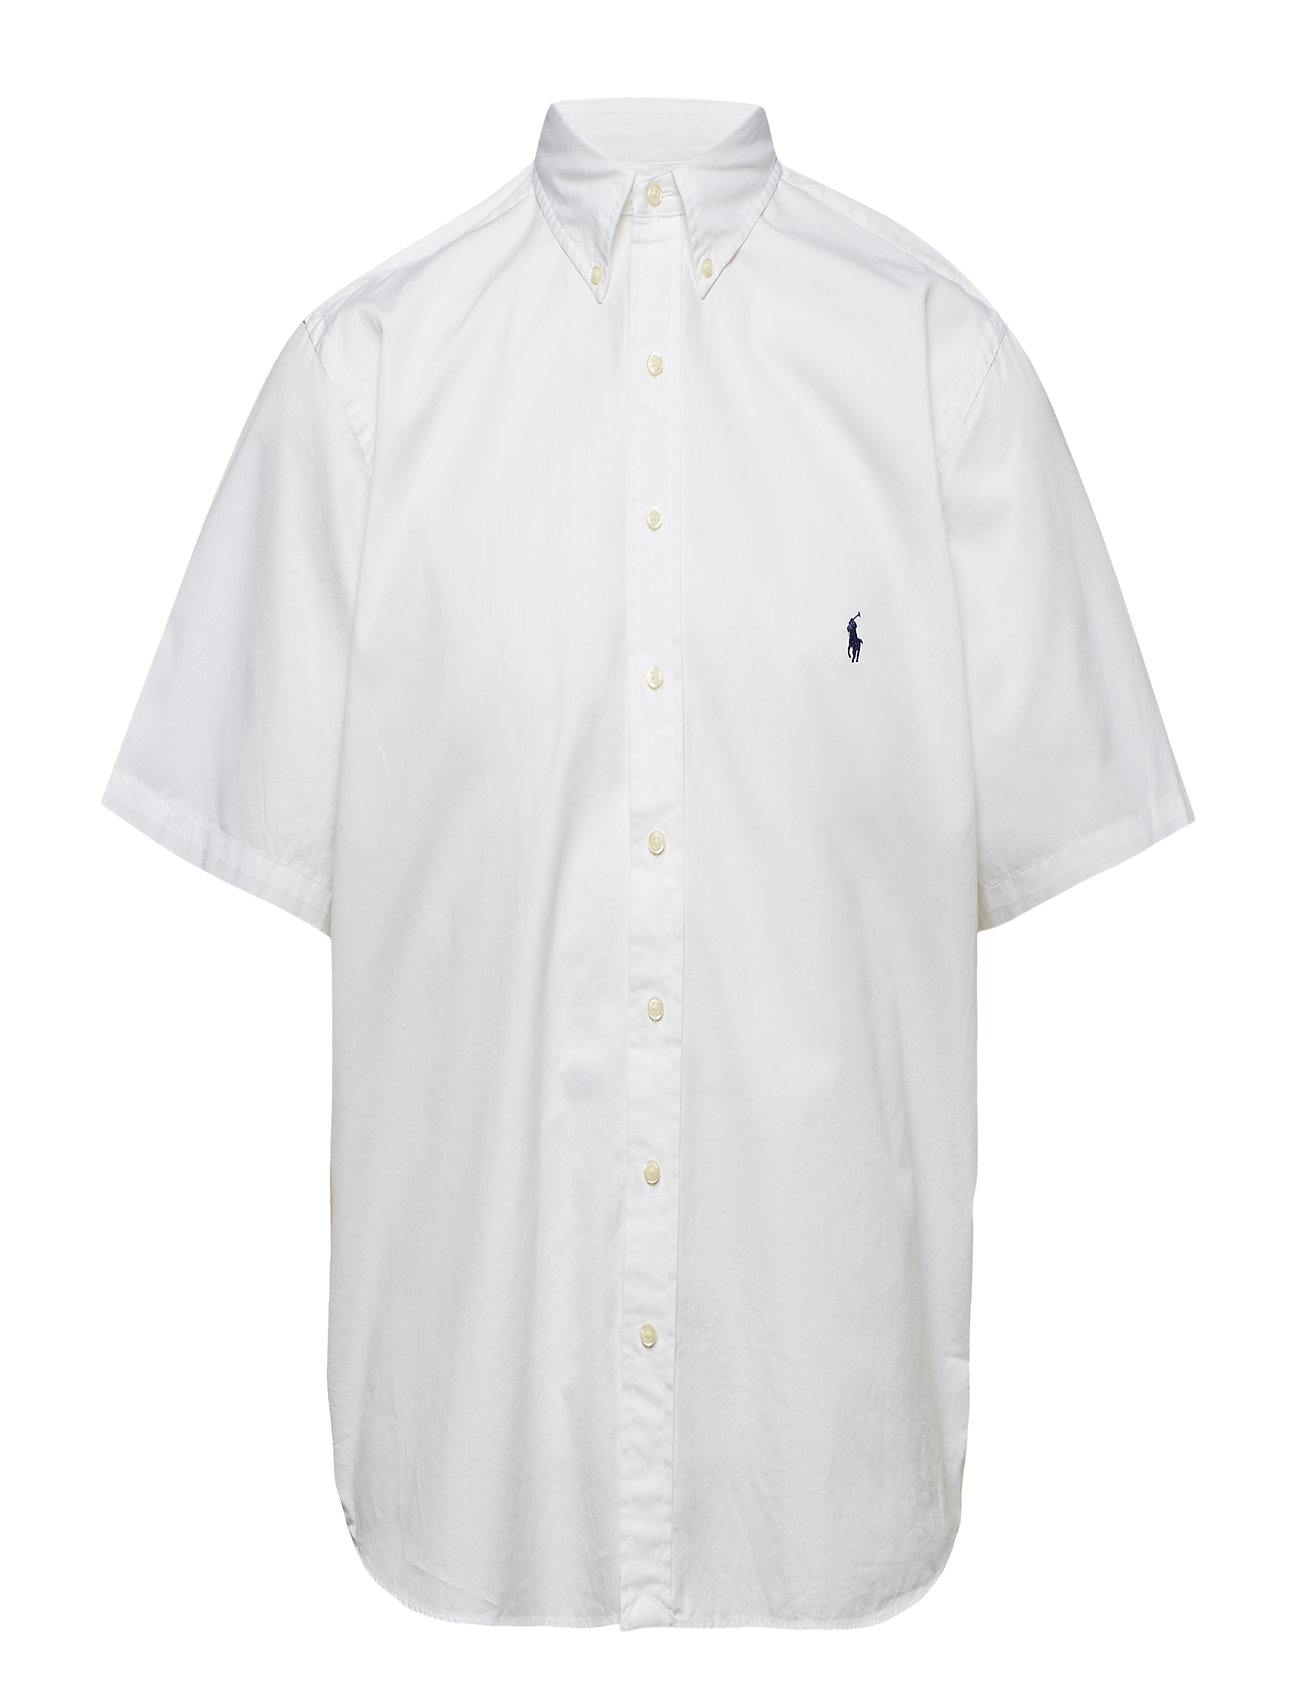 Classic Shirt Fit Classic Fit Twill rBoxdCe